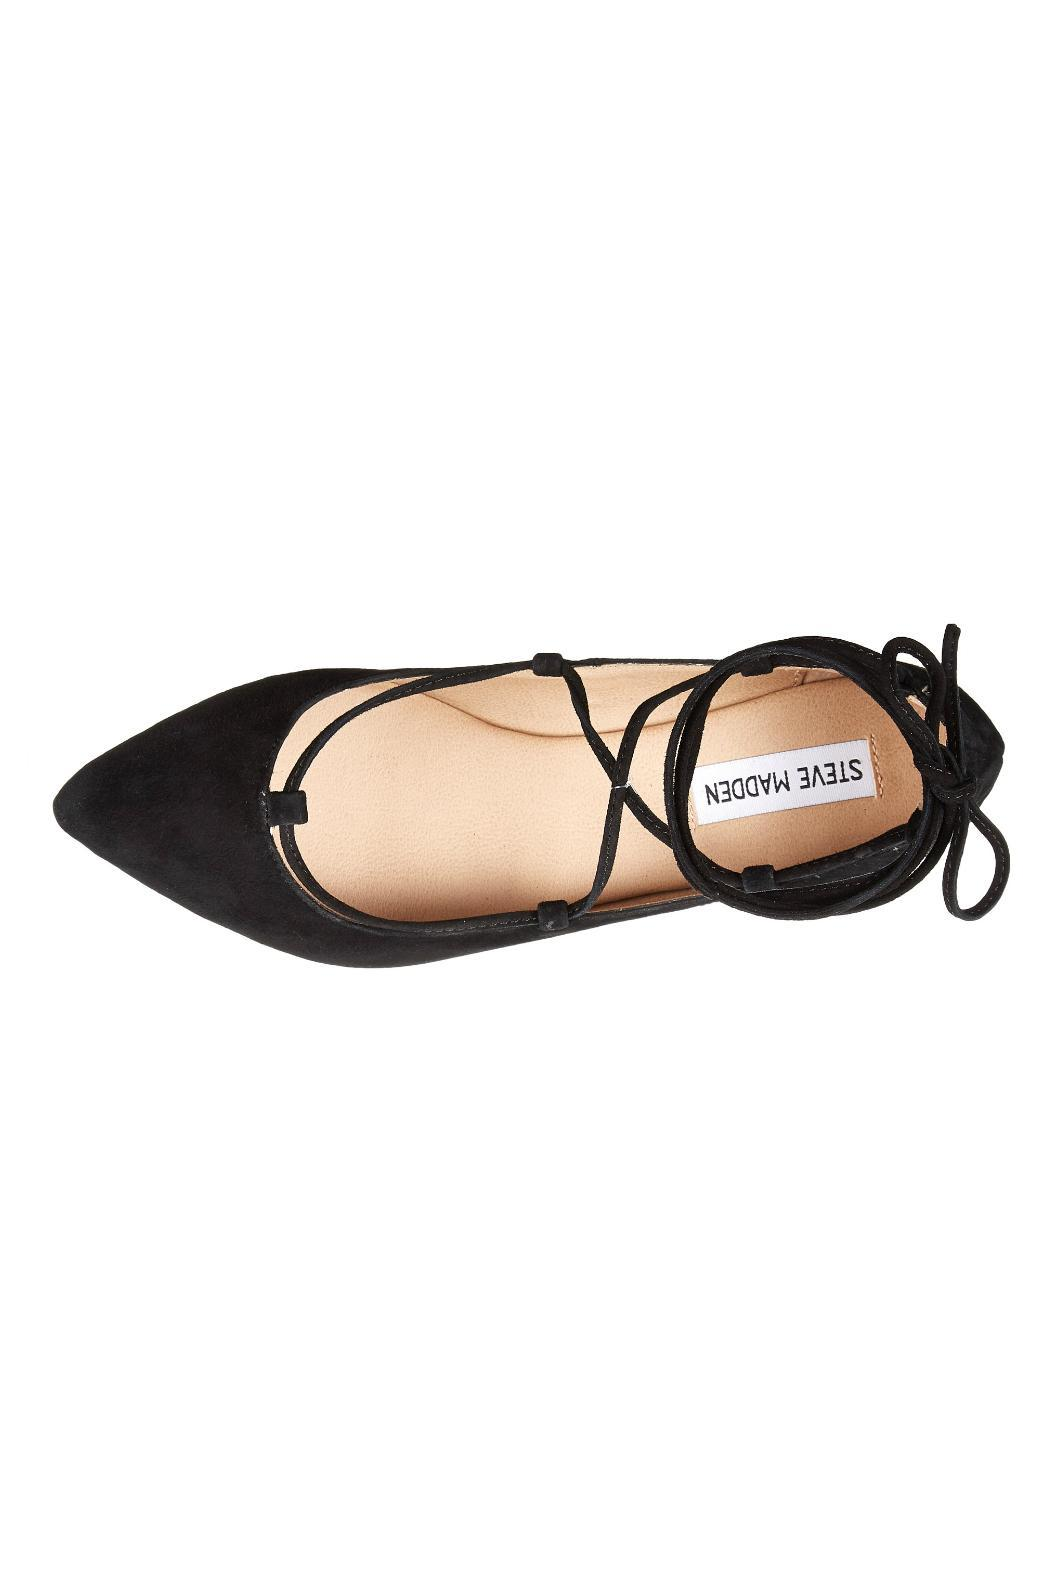 0b45bac849f Steve Madden Eleanorr Lace-Up Flat from Branford by Shoetique ...